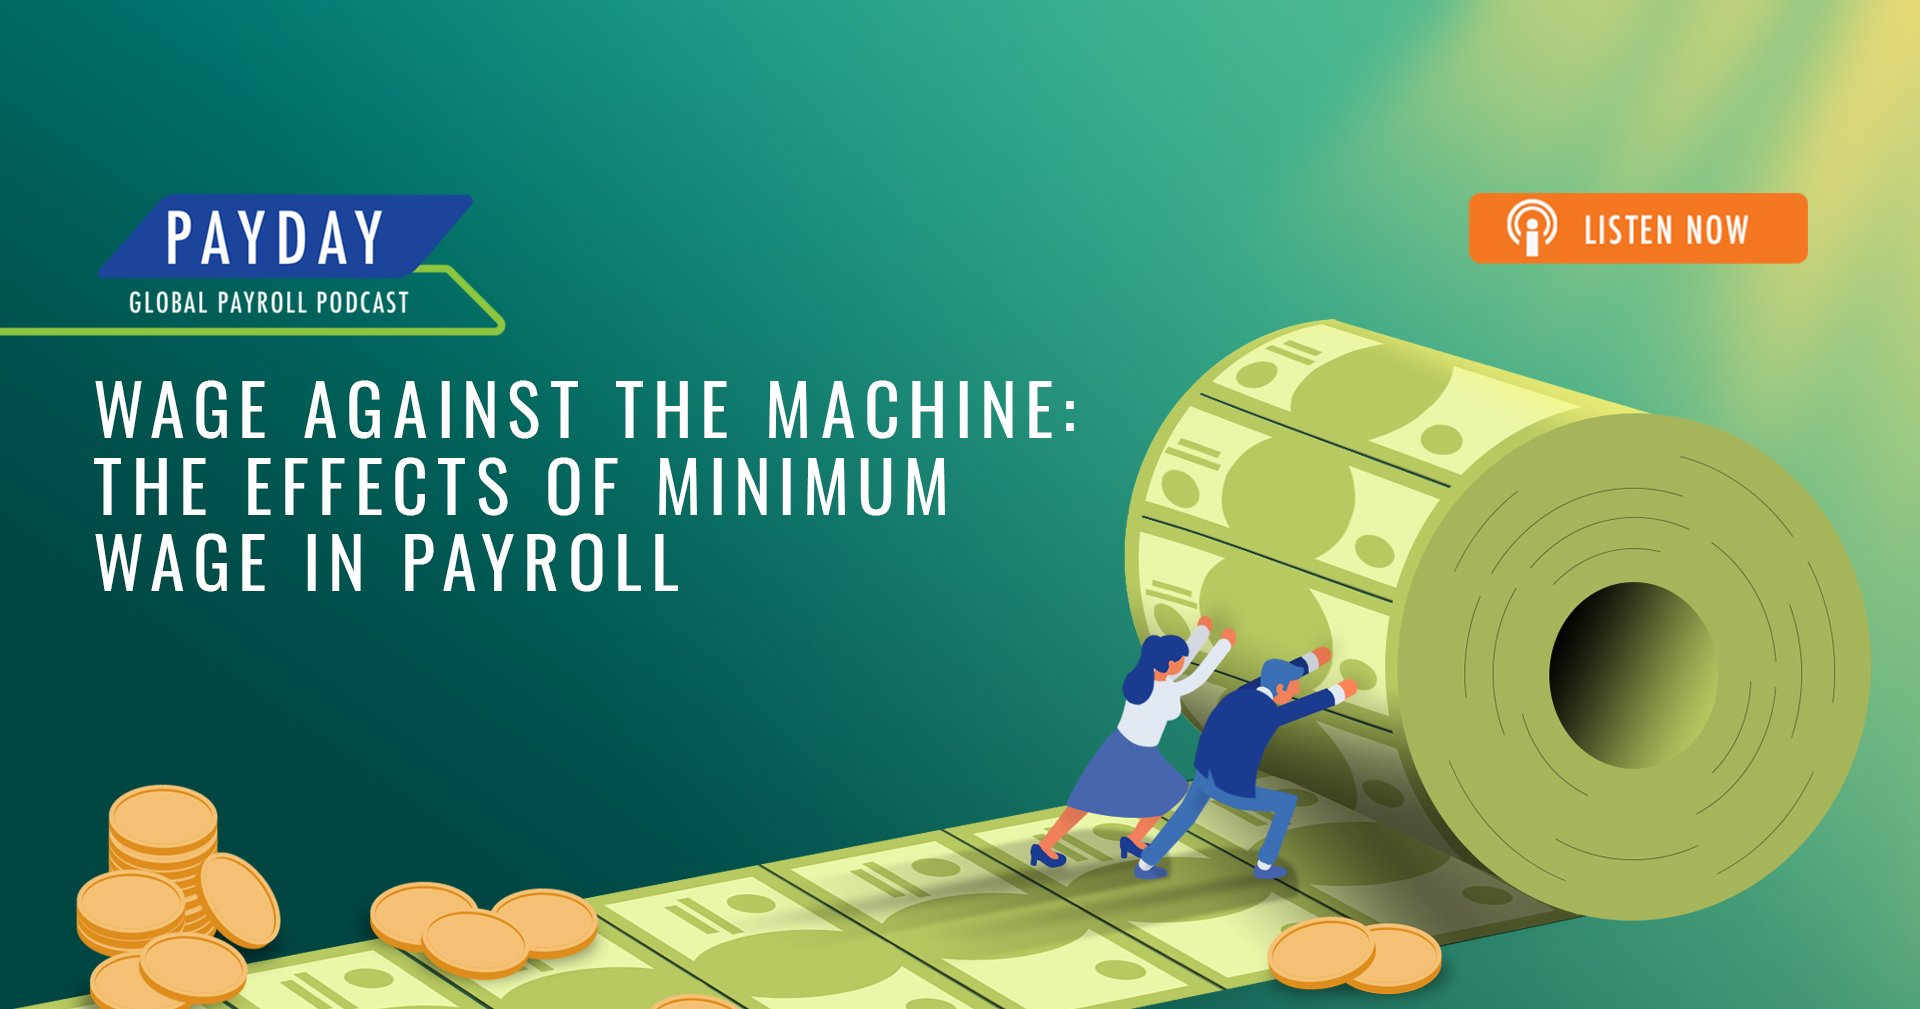 Wage Against The Machine: the effects of minimum wage in payroll